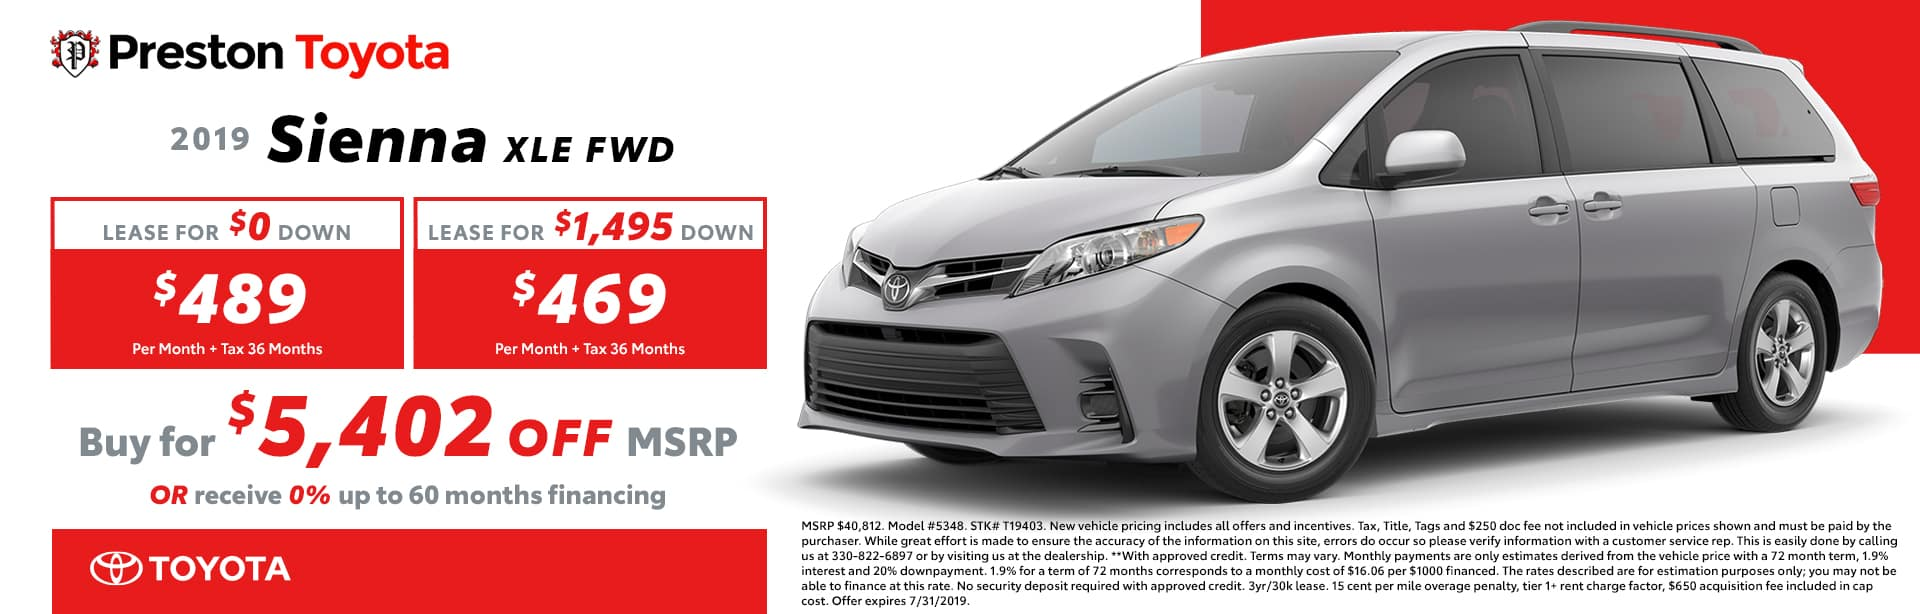 July special on the 2019 Toyota Sienna